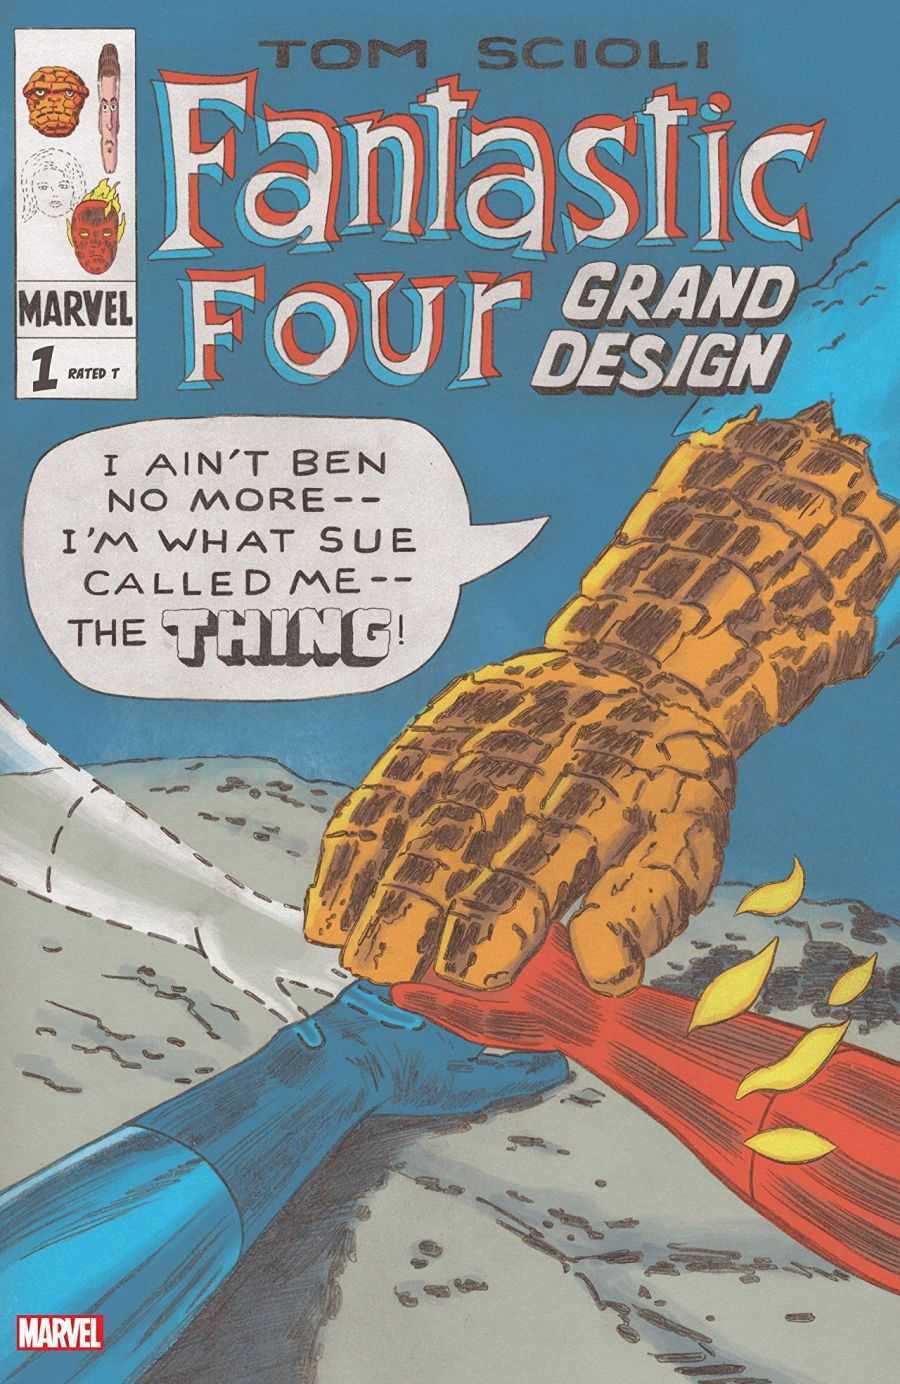 Fantastic Four Grand Deign #1